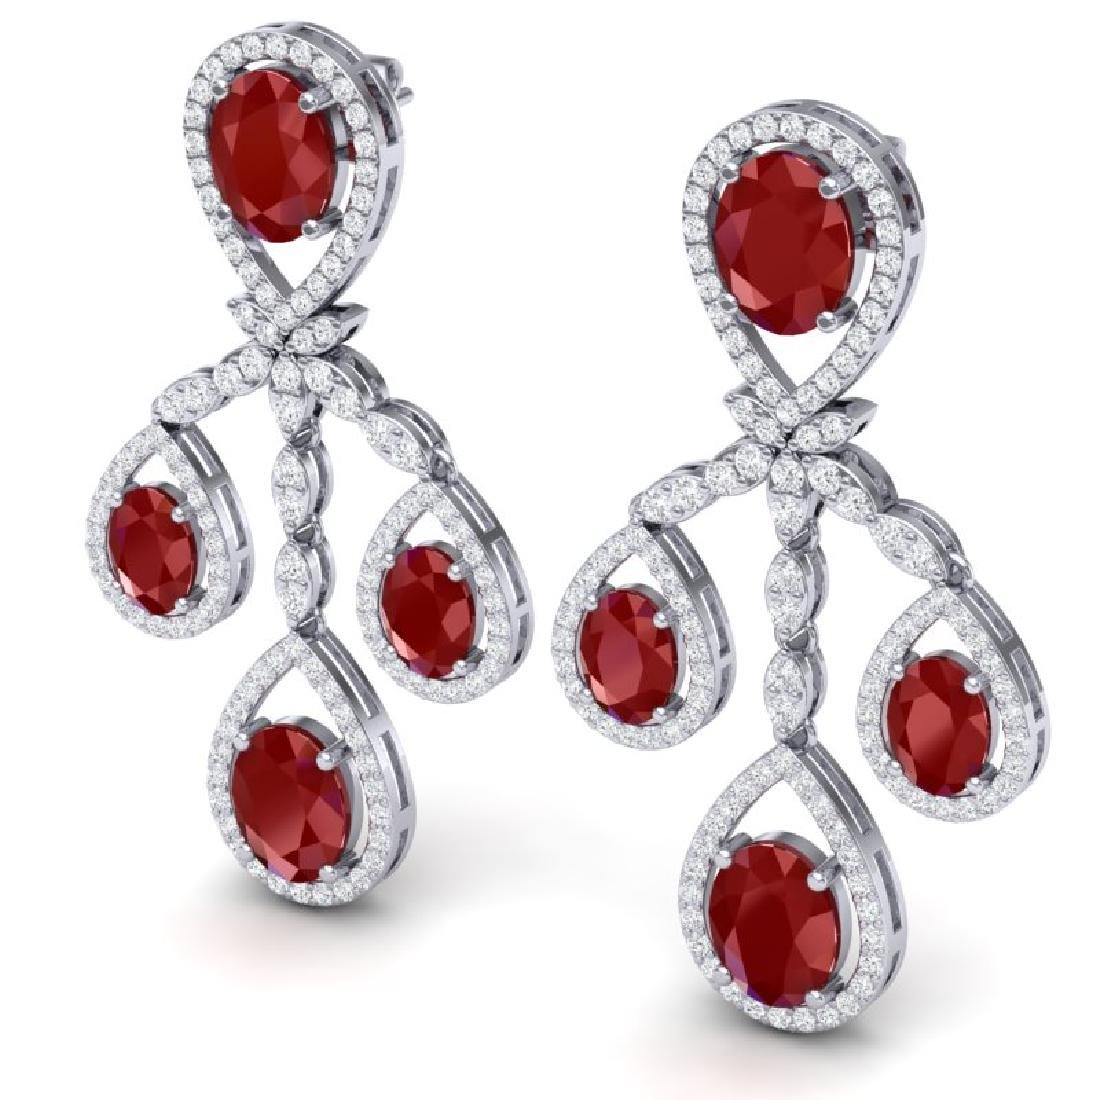 25.08 CTW Royalty Designer Ruby & VS Diamond Earrings - 2